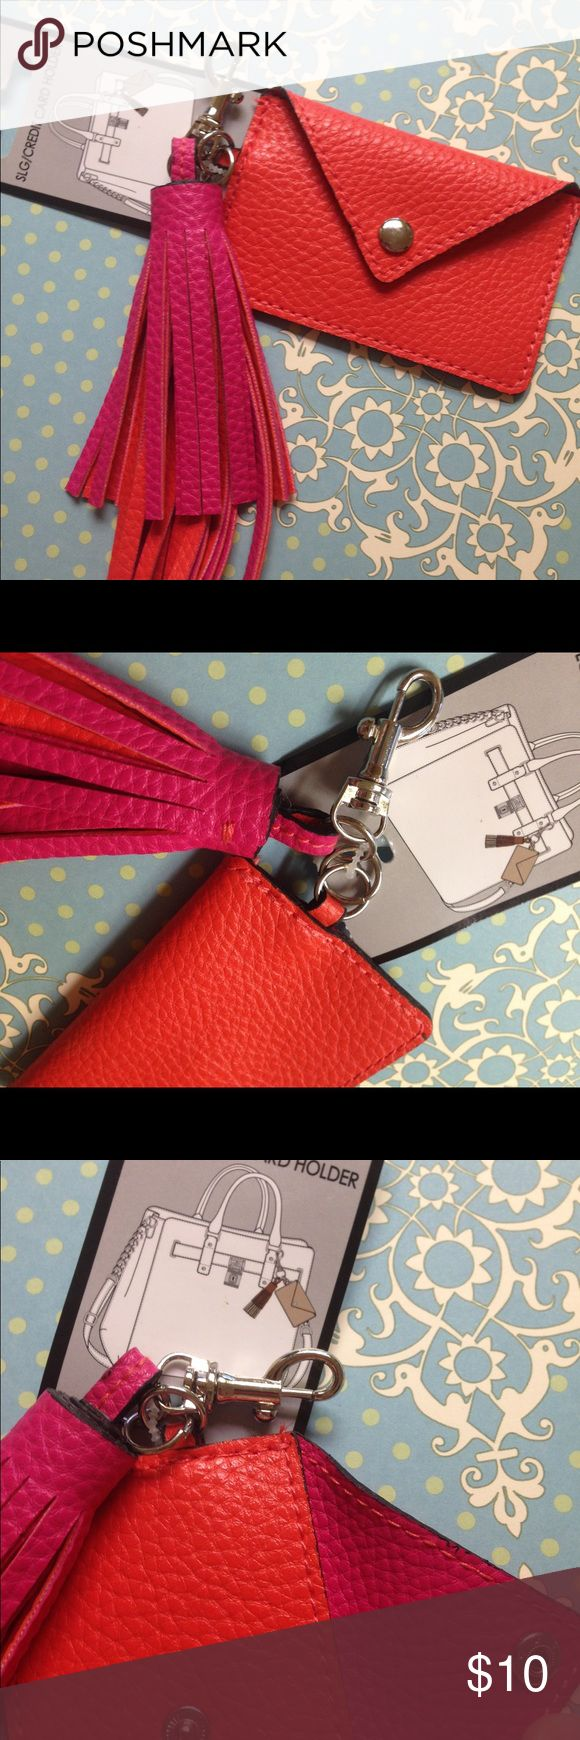 Tassel bag clip charm w/ credit card holder pocket NWT and so cute! Faux leather bag charm with clip, has a tassel charm and a credit card holder with snap closure attached. Color is poppy / pink / orange, see pictures! 💋 Please note that there isn't a key ring attached to this charm / clip, but you could easily add your own (or store your key in the pocket!) 🚫 NO TRADES, 🚭 SMOKE-FREE ITEM, 🐶 DOG-FRIENDLY HOME. 💗💐 Thank you for visiting my Posh closet @leliluv! 🌺😘 All Sales are…